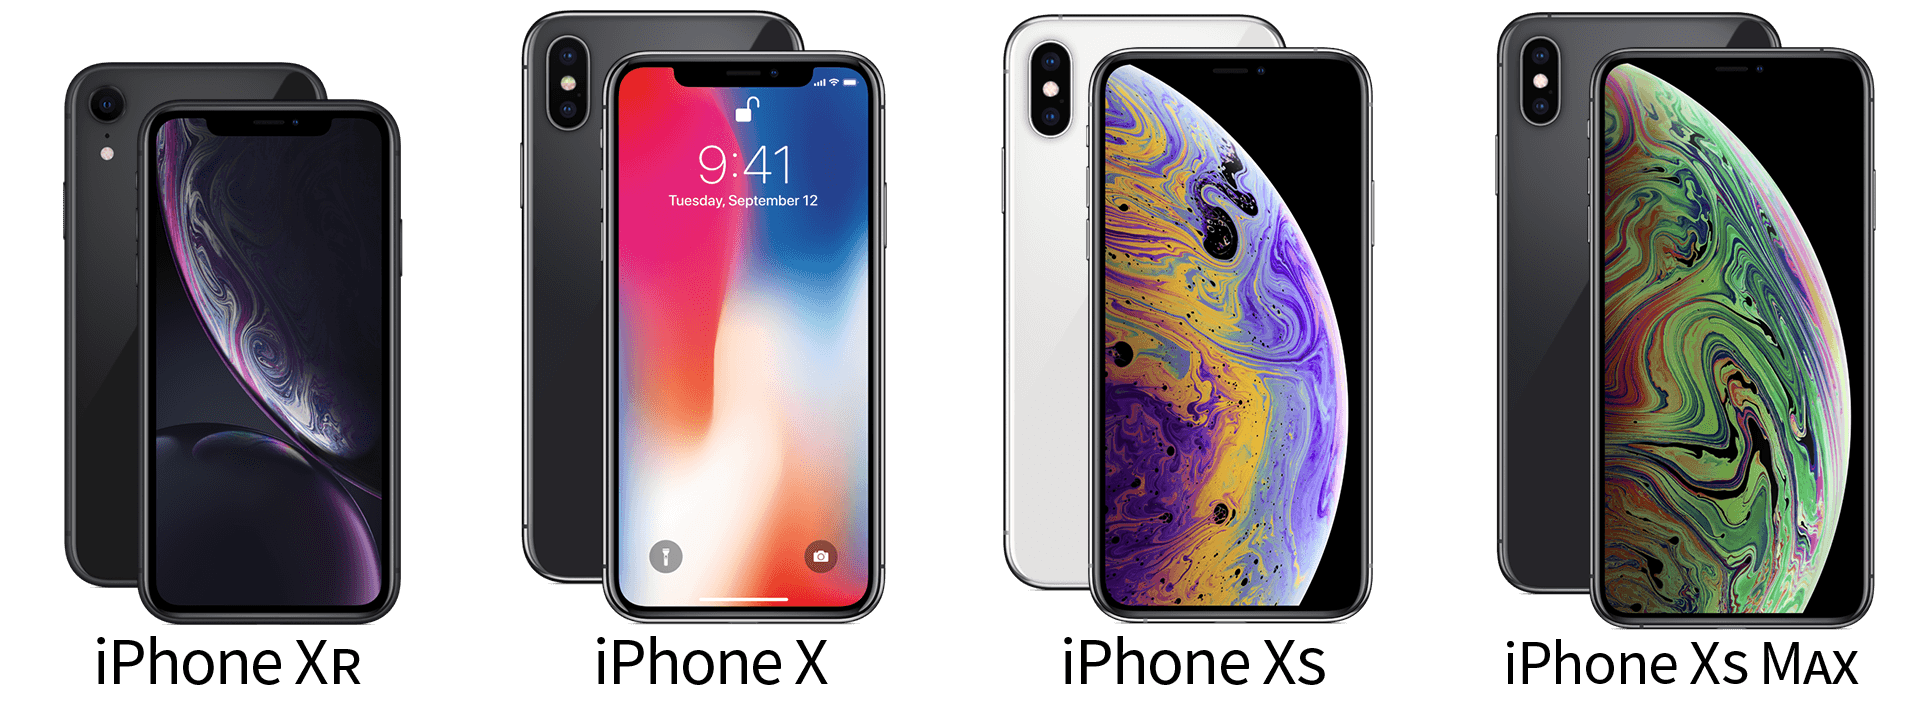 Eligible models include iPhone X, iPhone XS, iPhone XS Max and iPhone XR